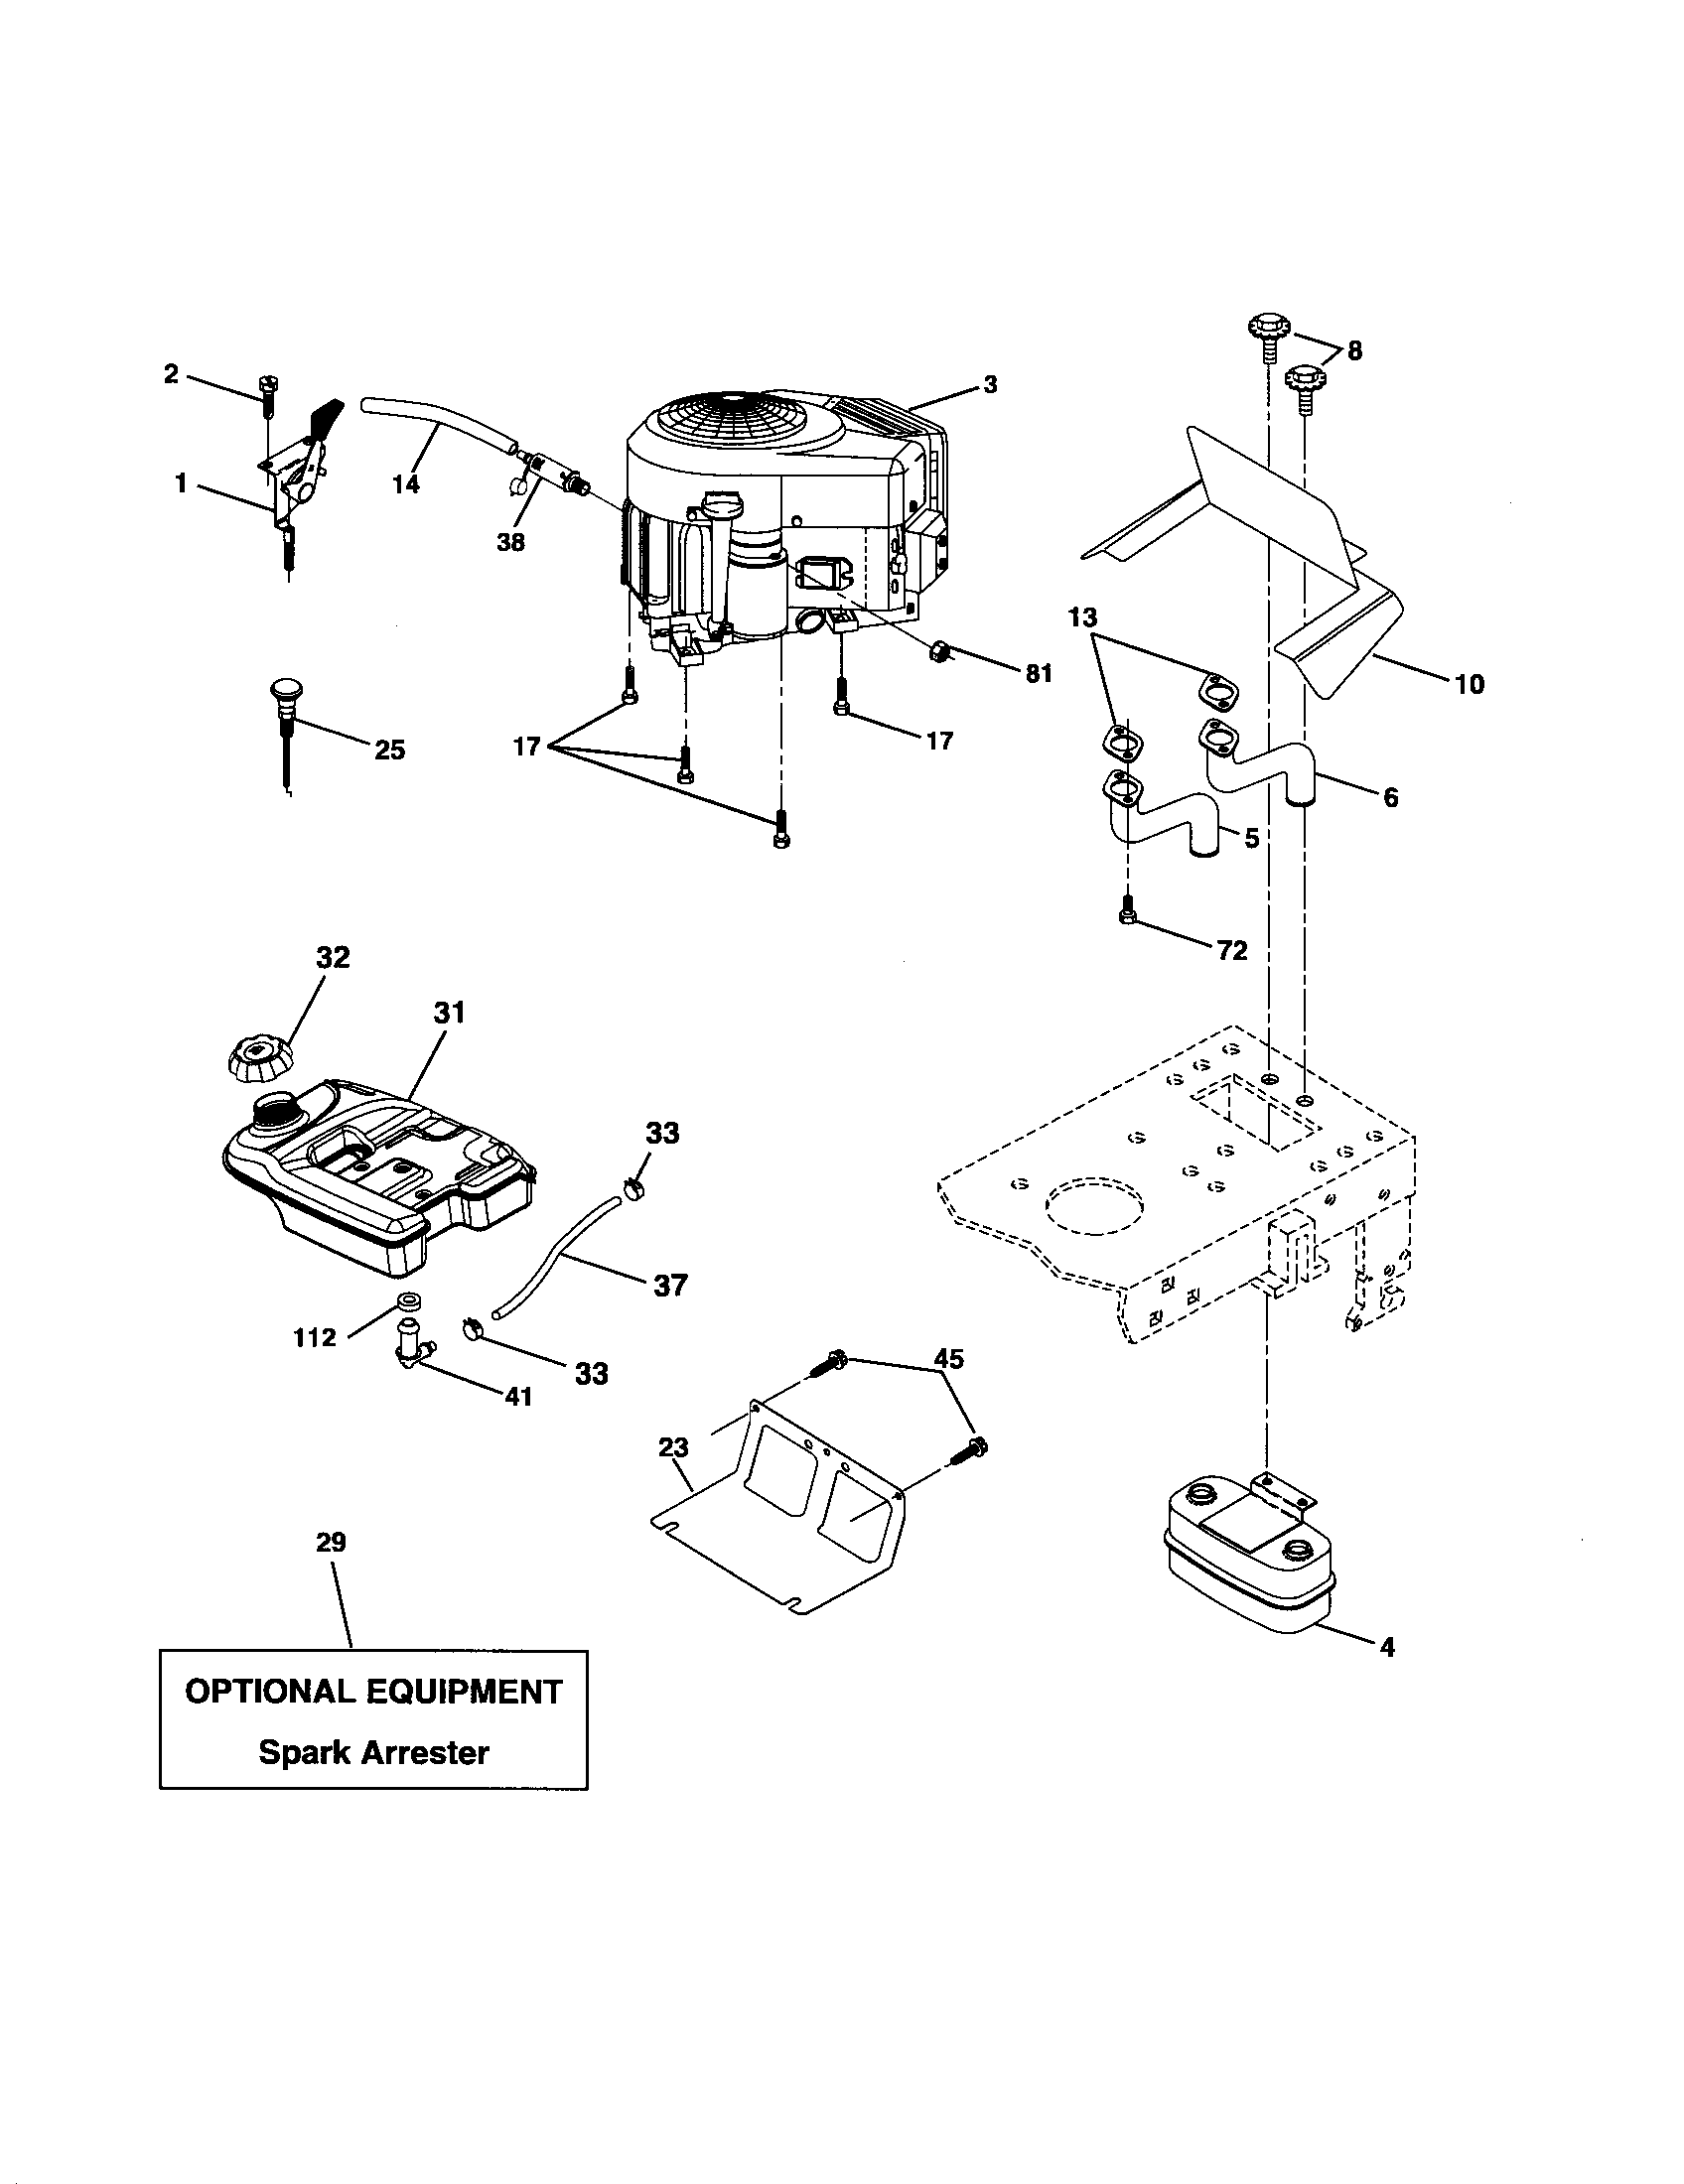 Wiring Diagram For 46 Ballaft